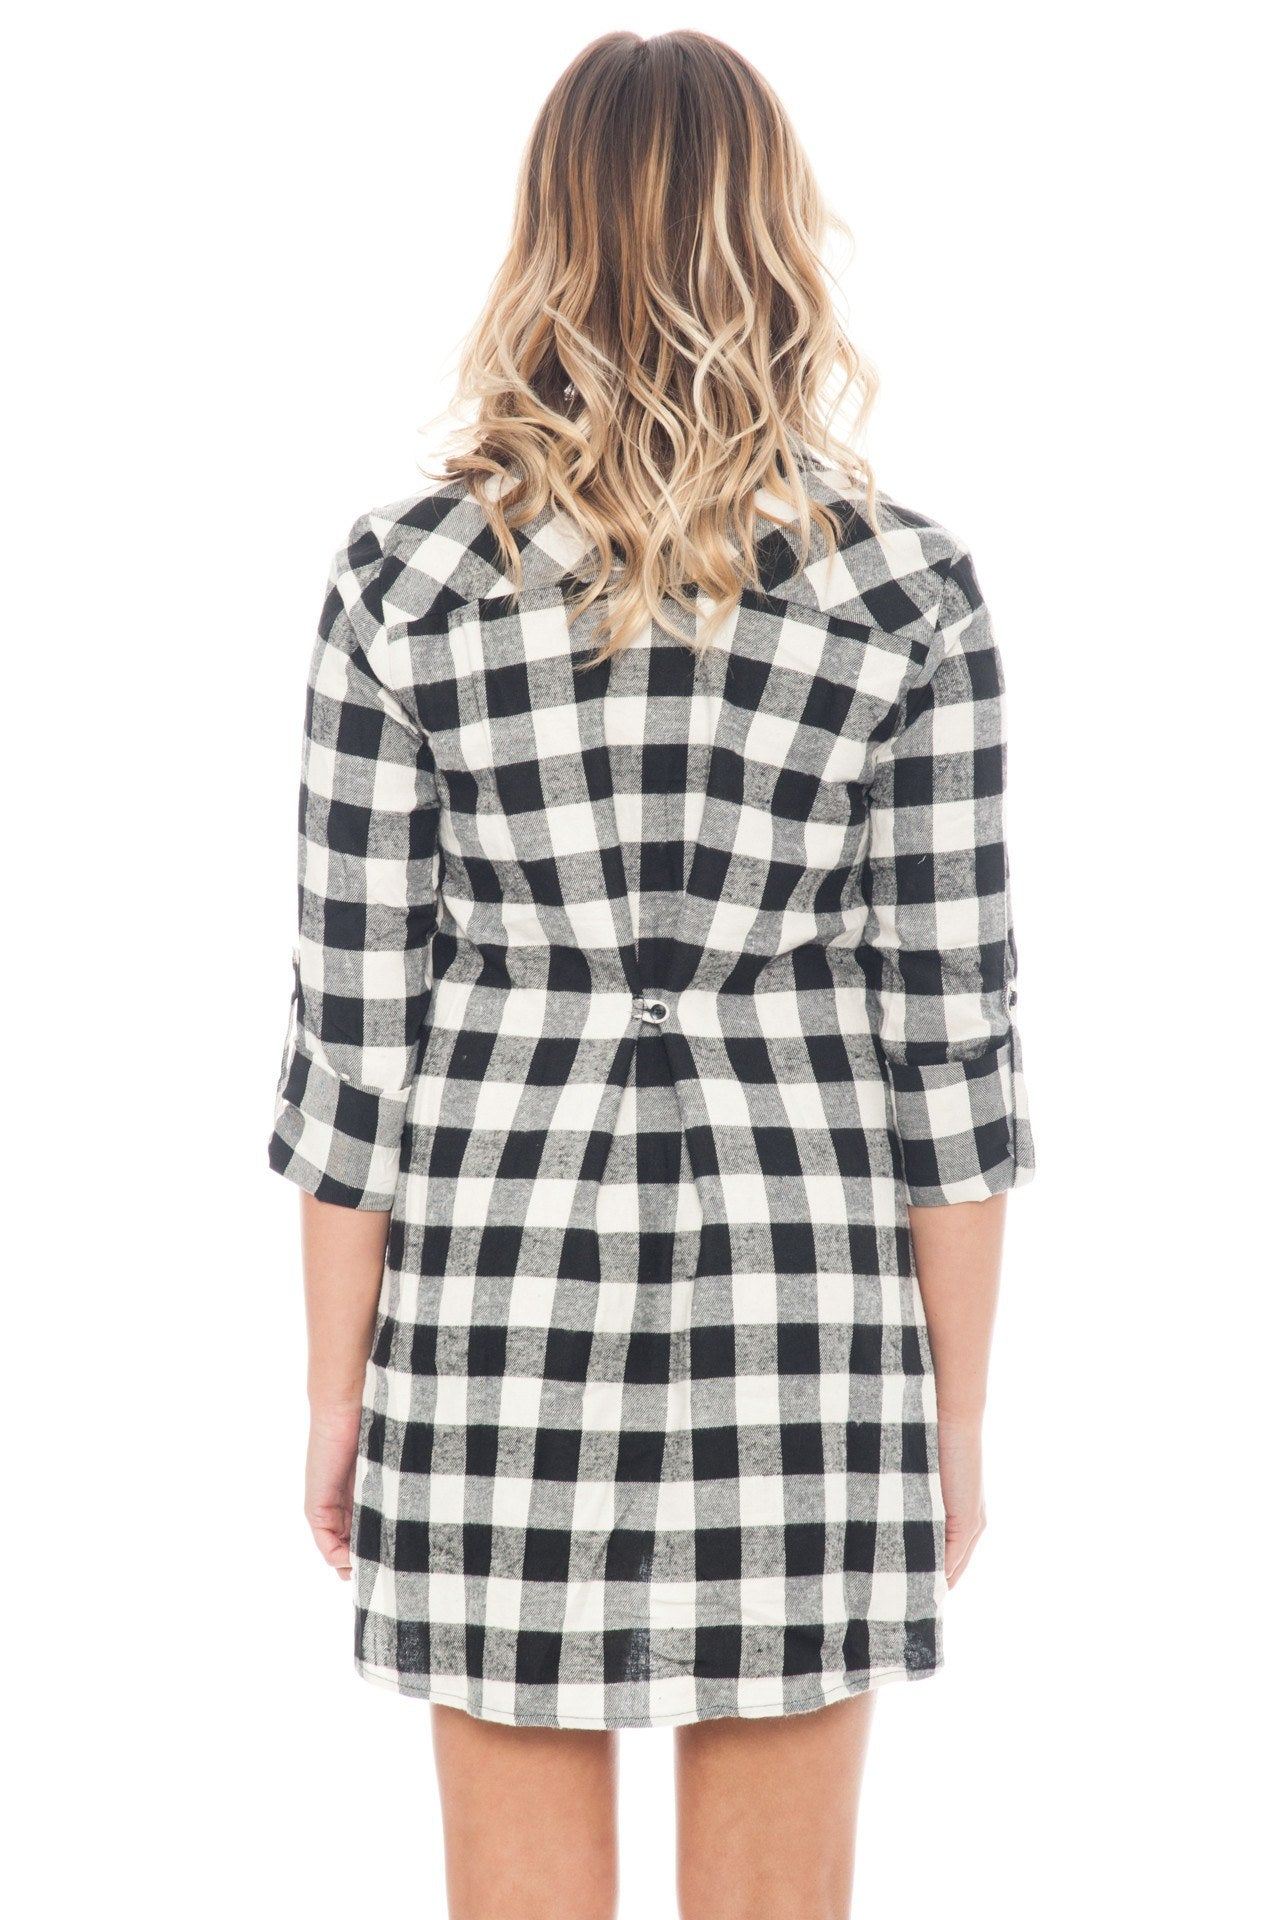 Dress - Plaid Button Down